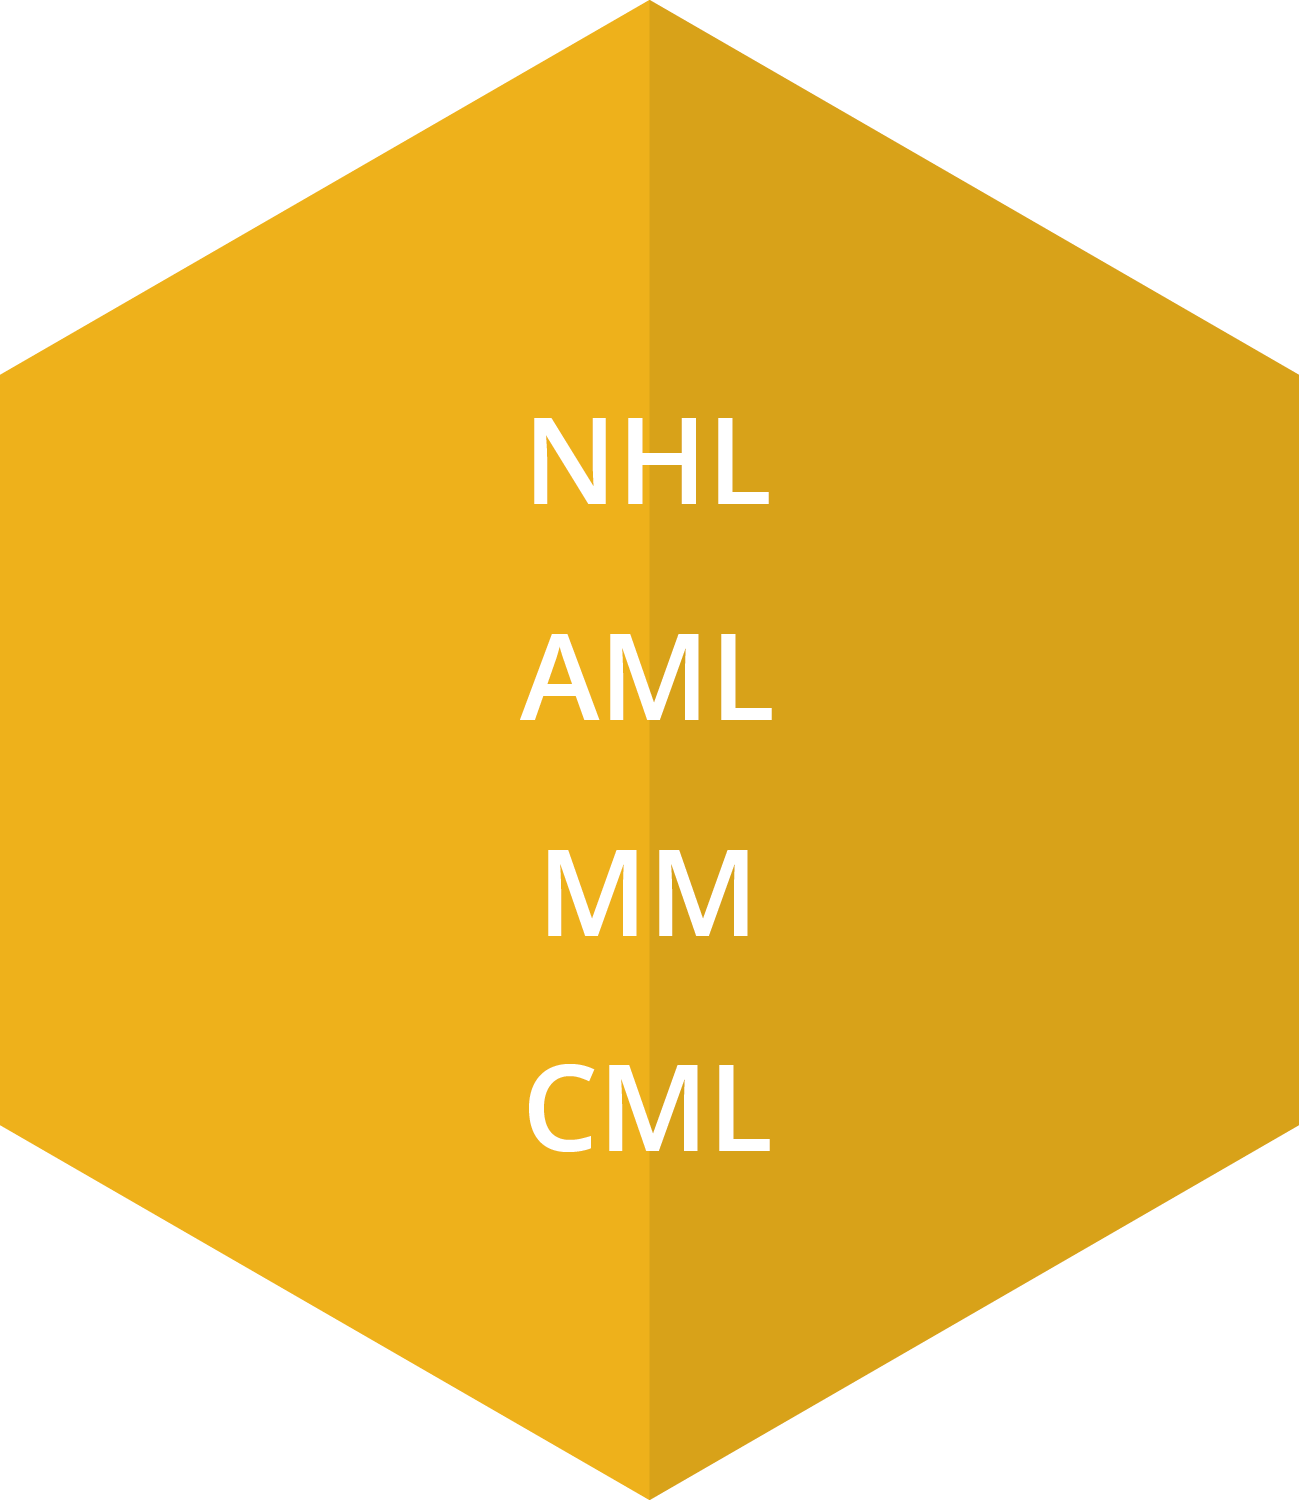 NHL, AML, MM, CML